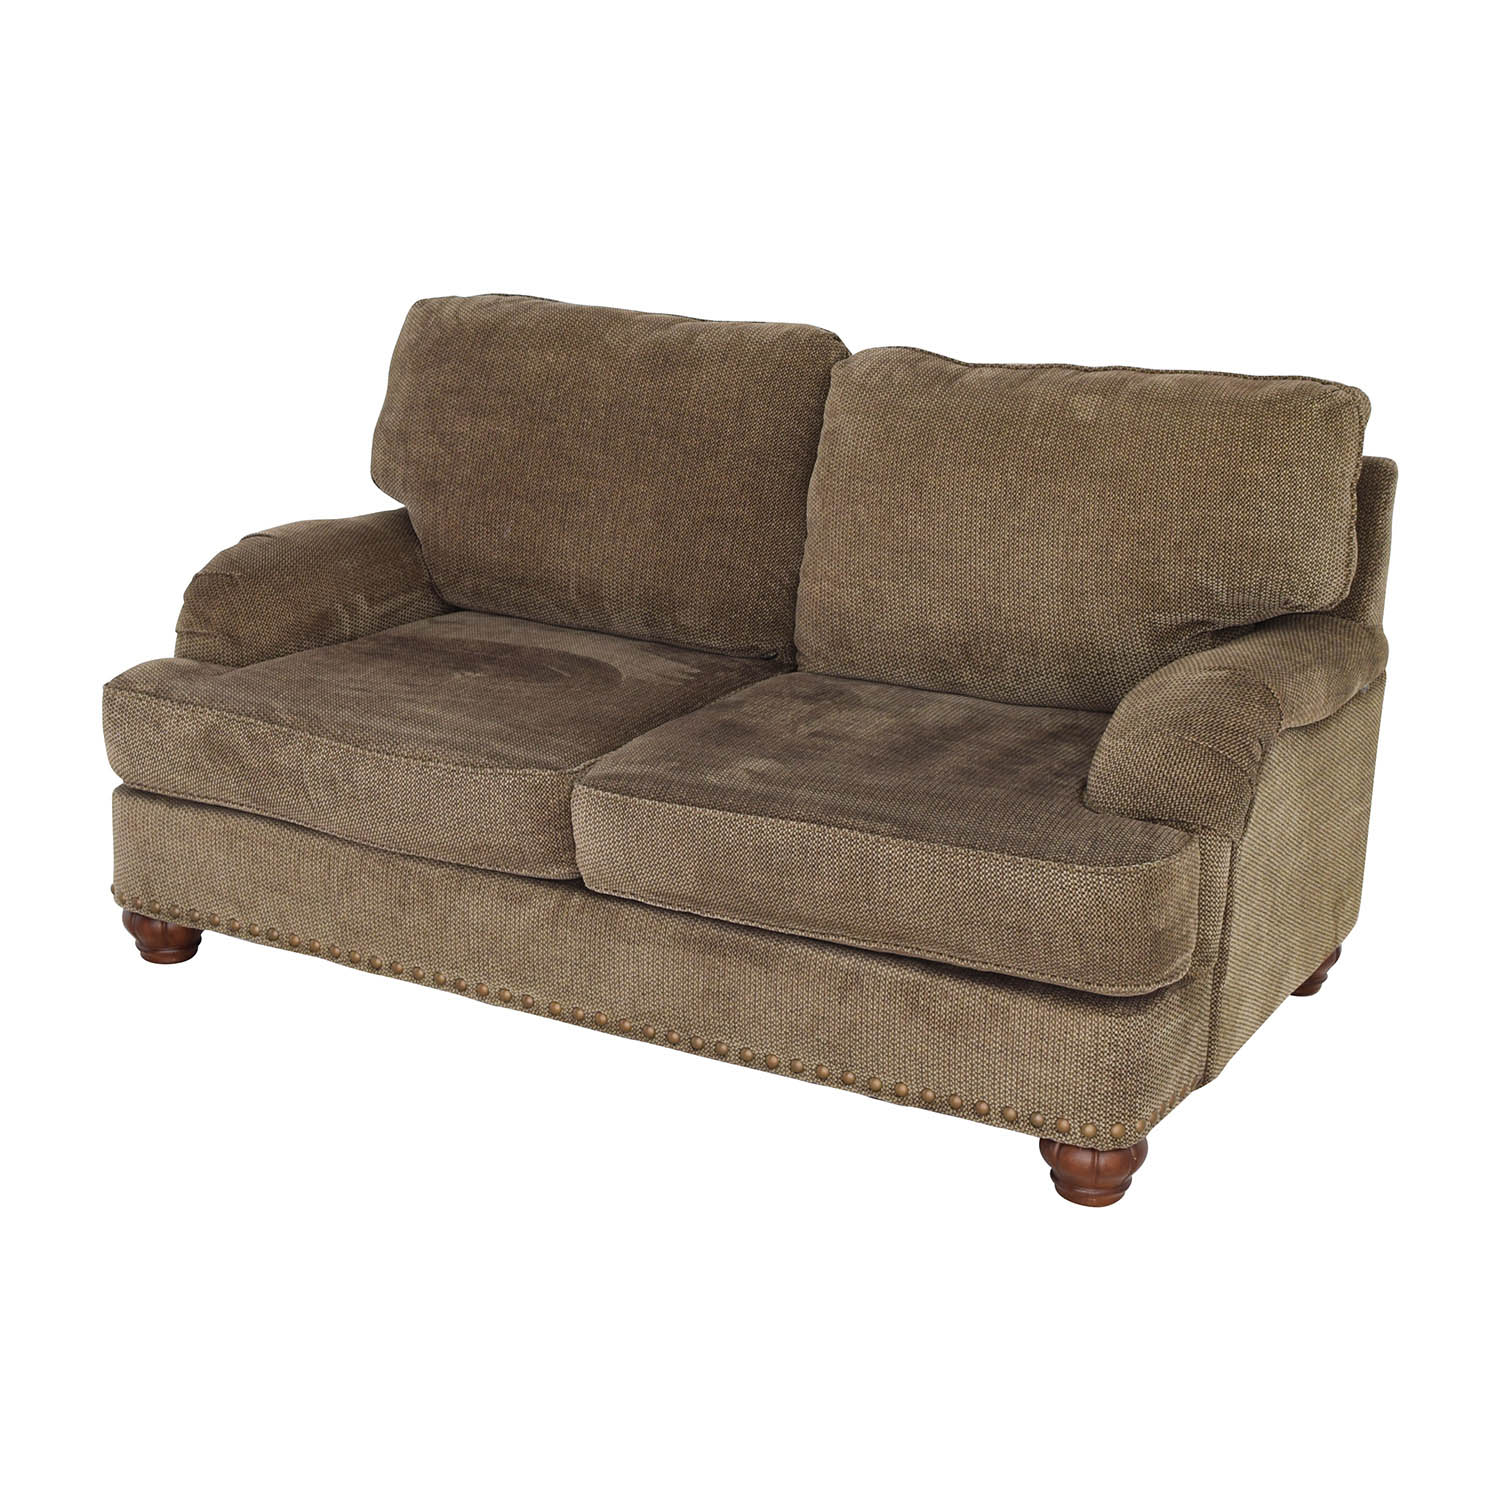 78 Off Ashley Furniture Ashley Furniture Barclay Place Jewel Loveseat Sofas